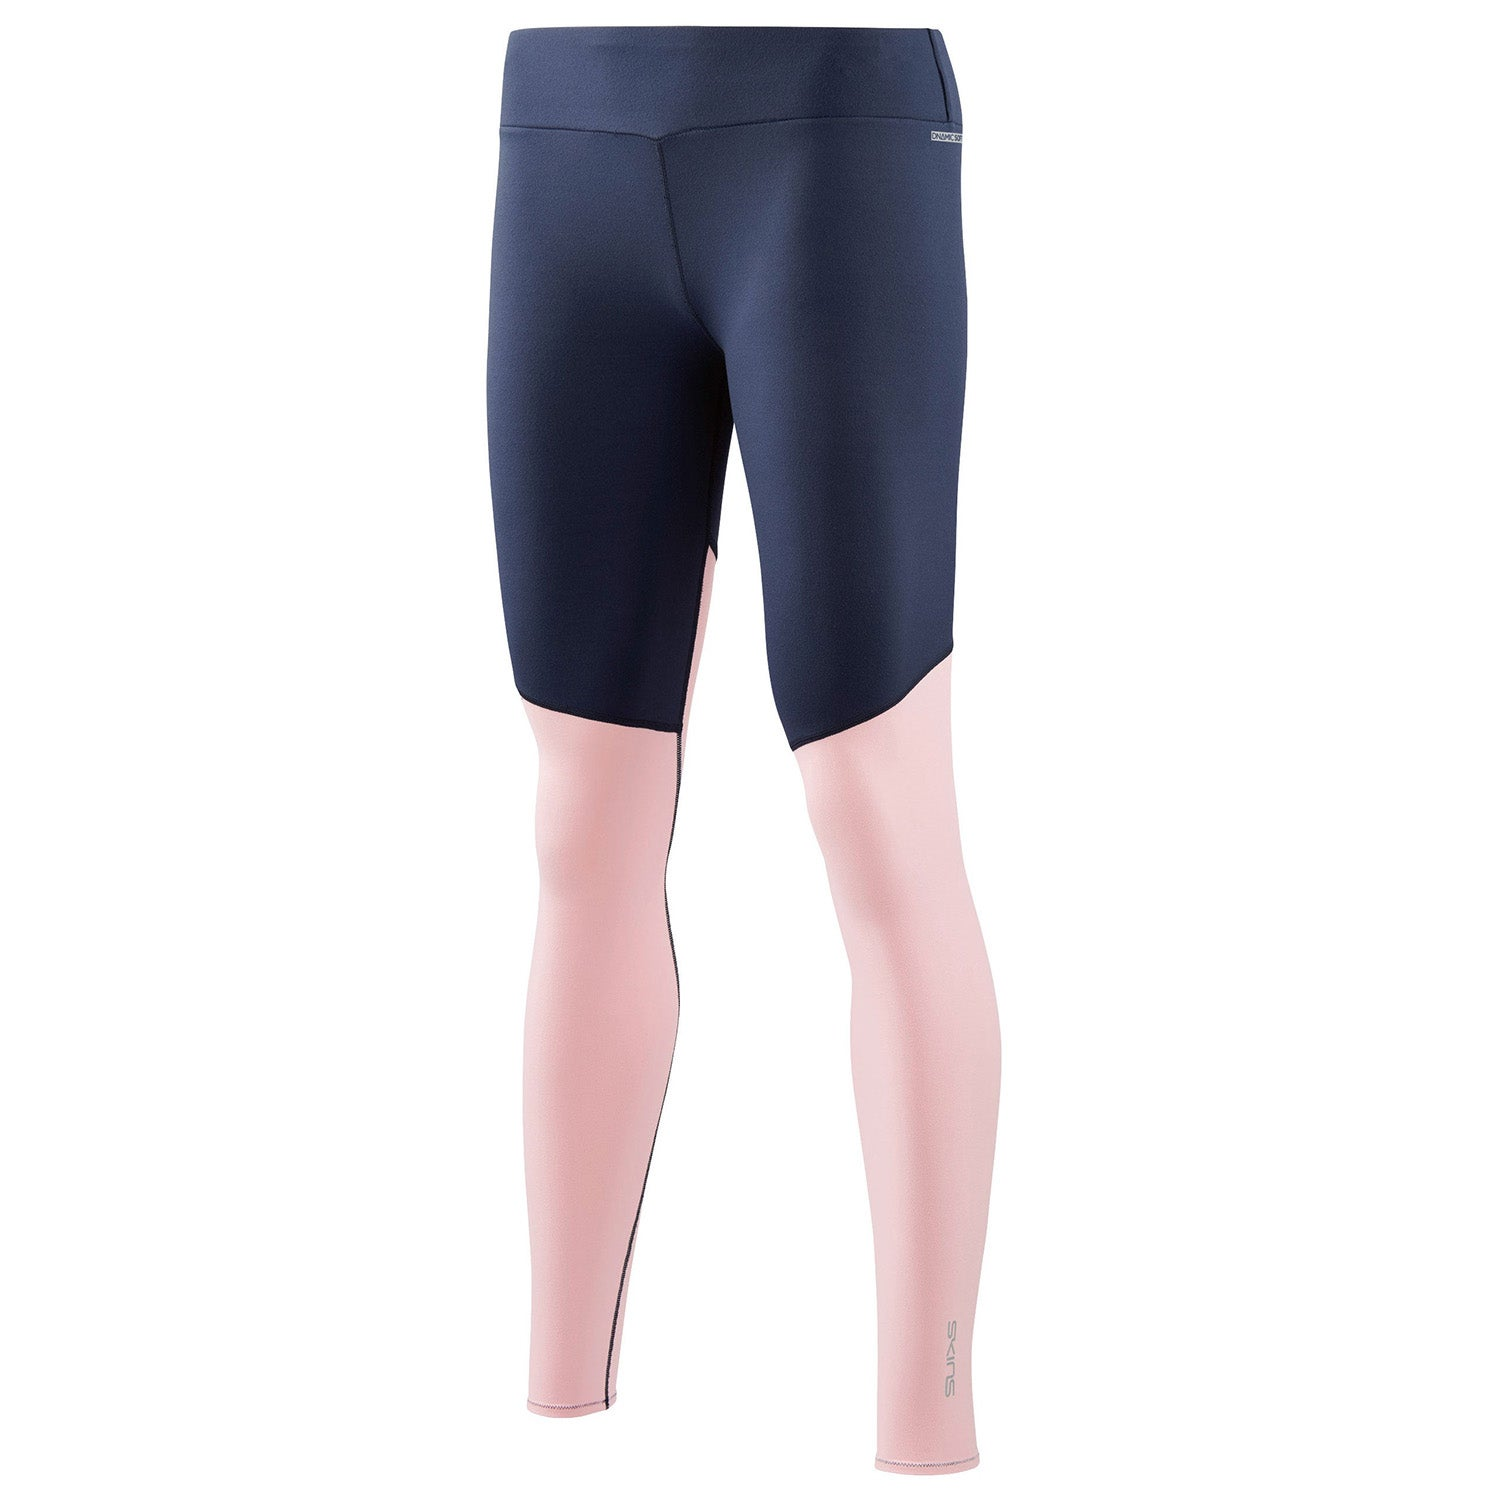 New Womens Compression Sports Gear Base Layer Skin Tight Long Gym PantsPink